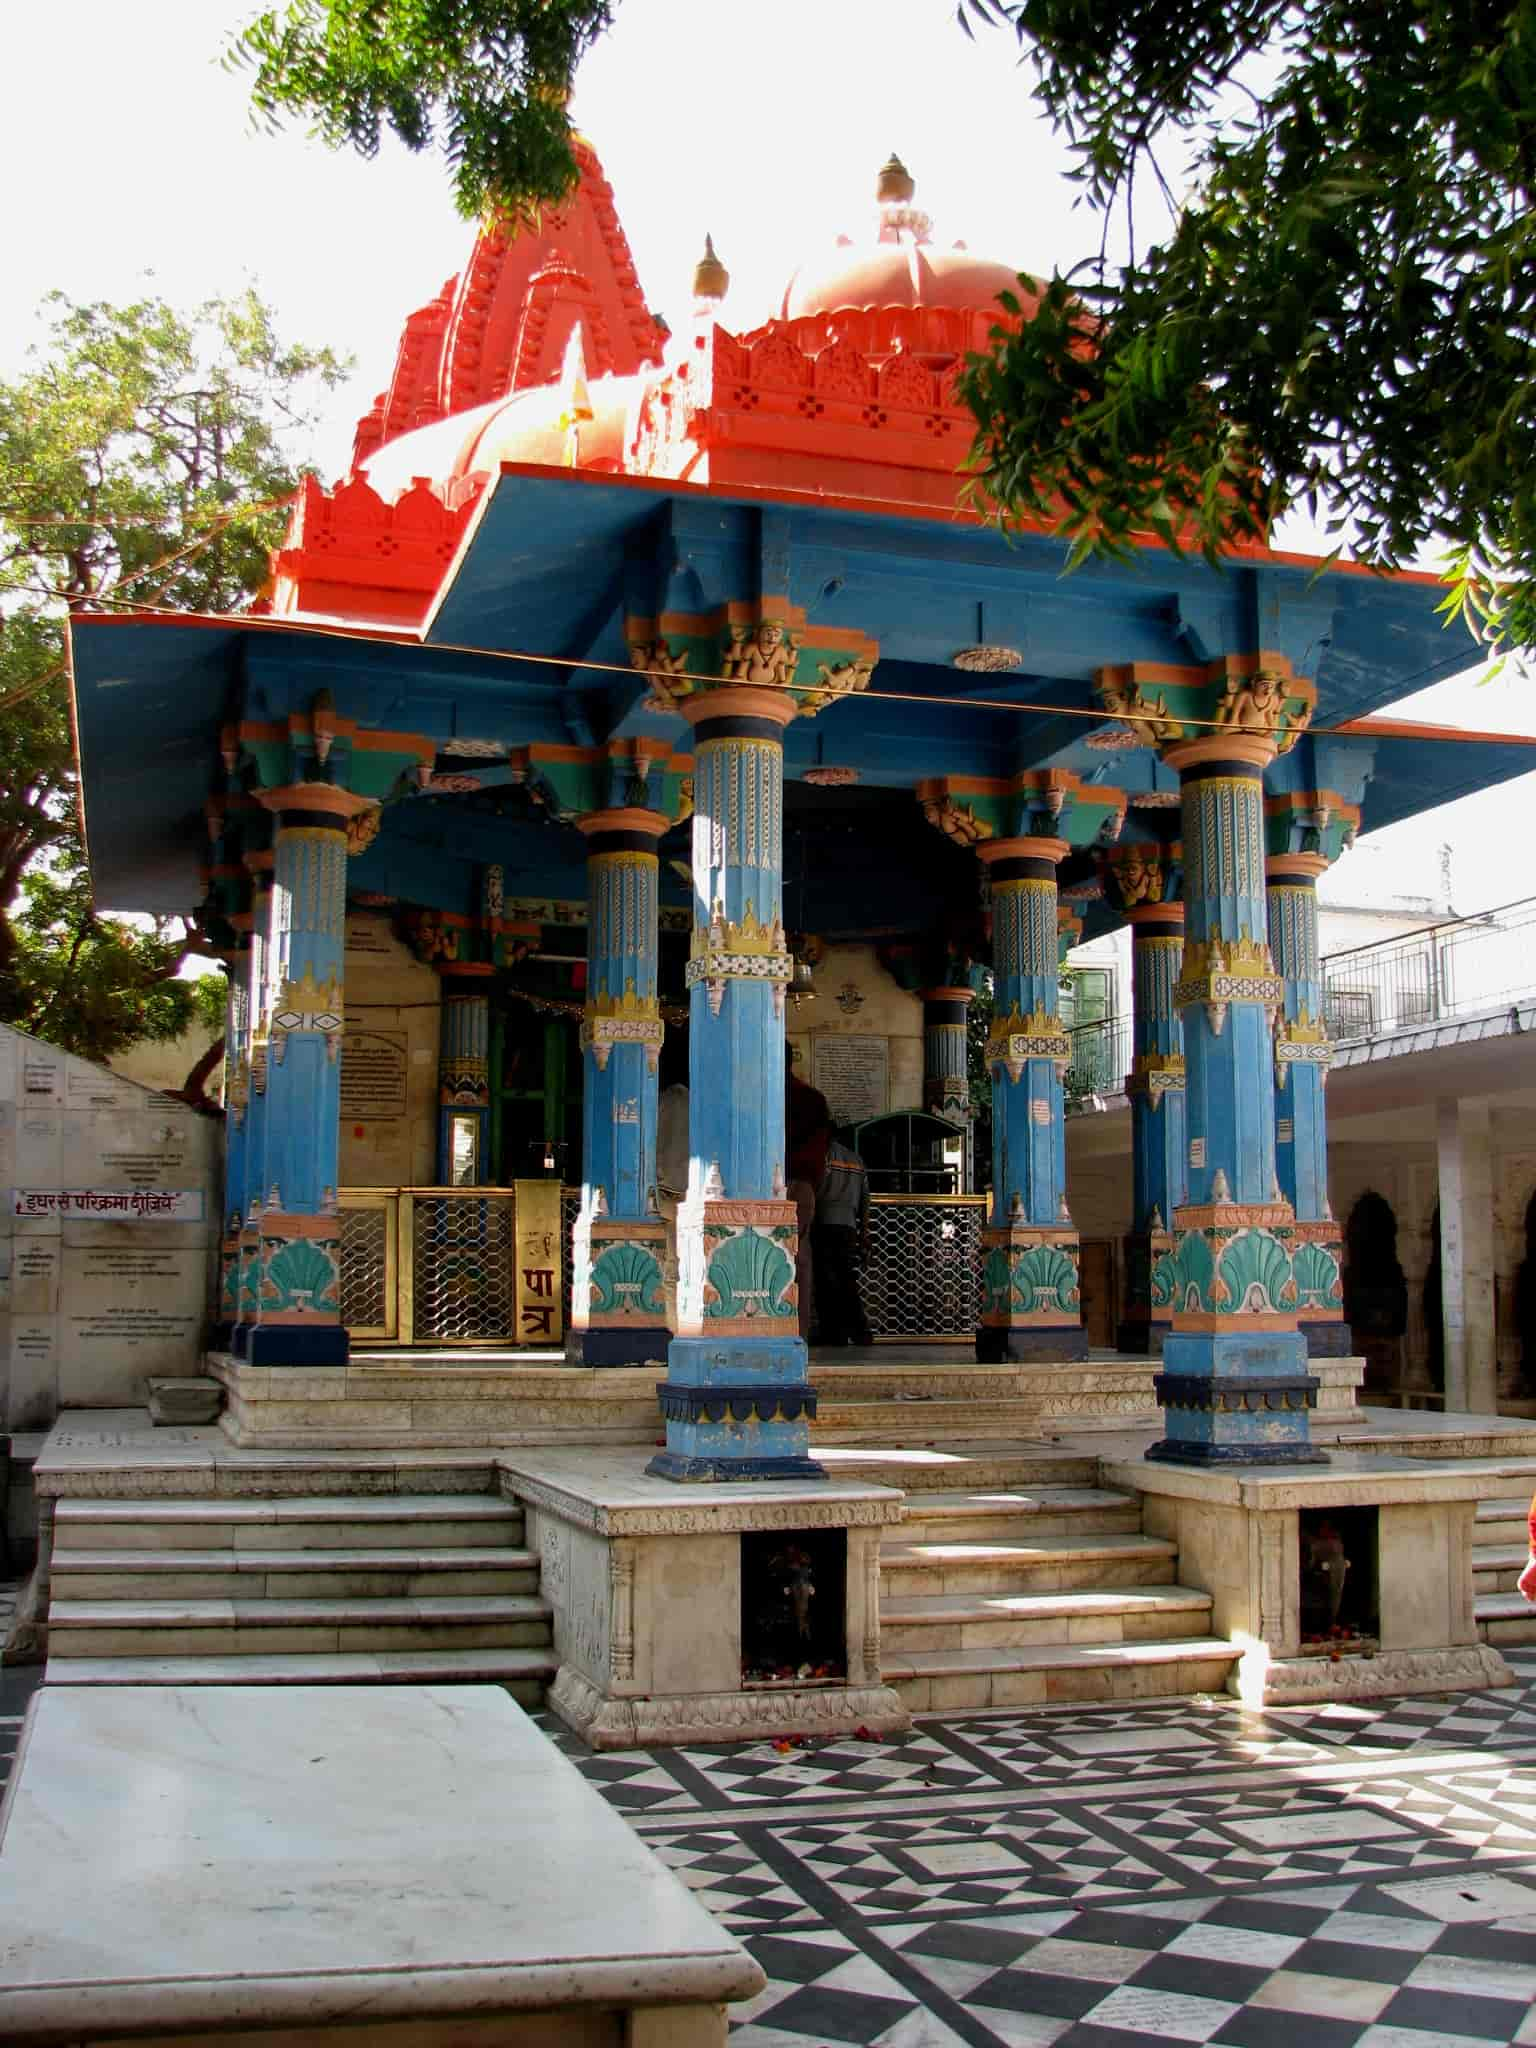 2000 years old Brahma temple in Pushkar is a rare religious site that is dedicated to the lord of creation.